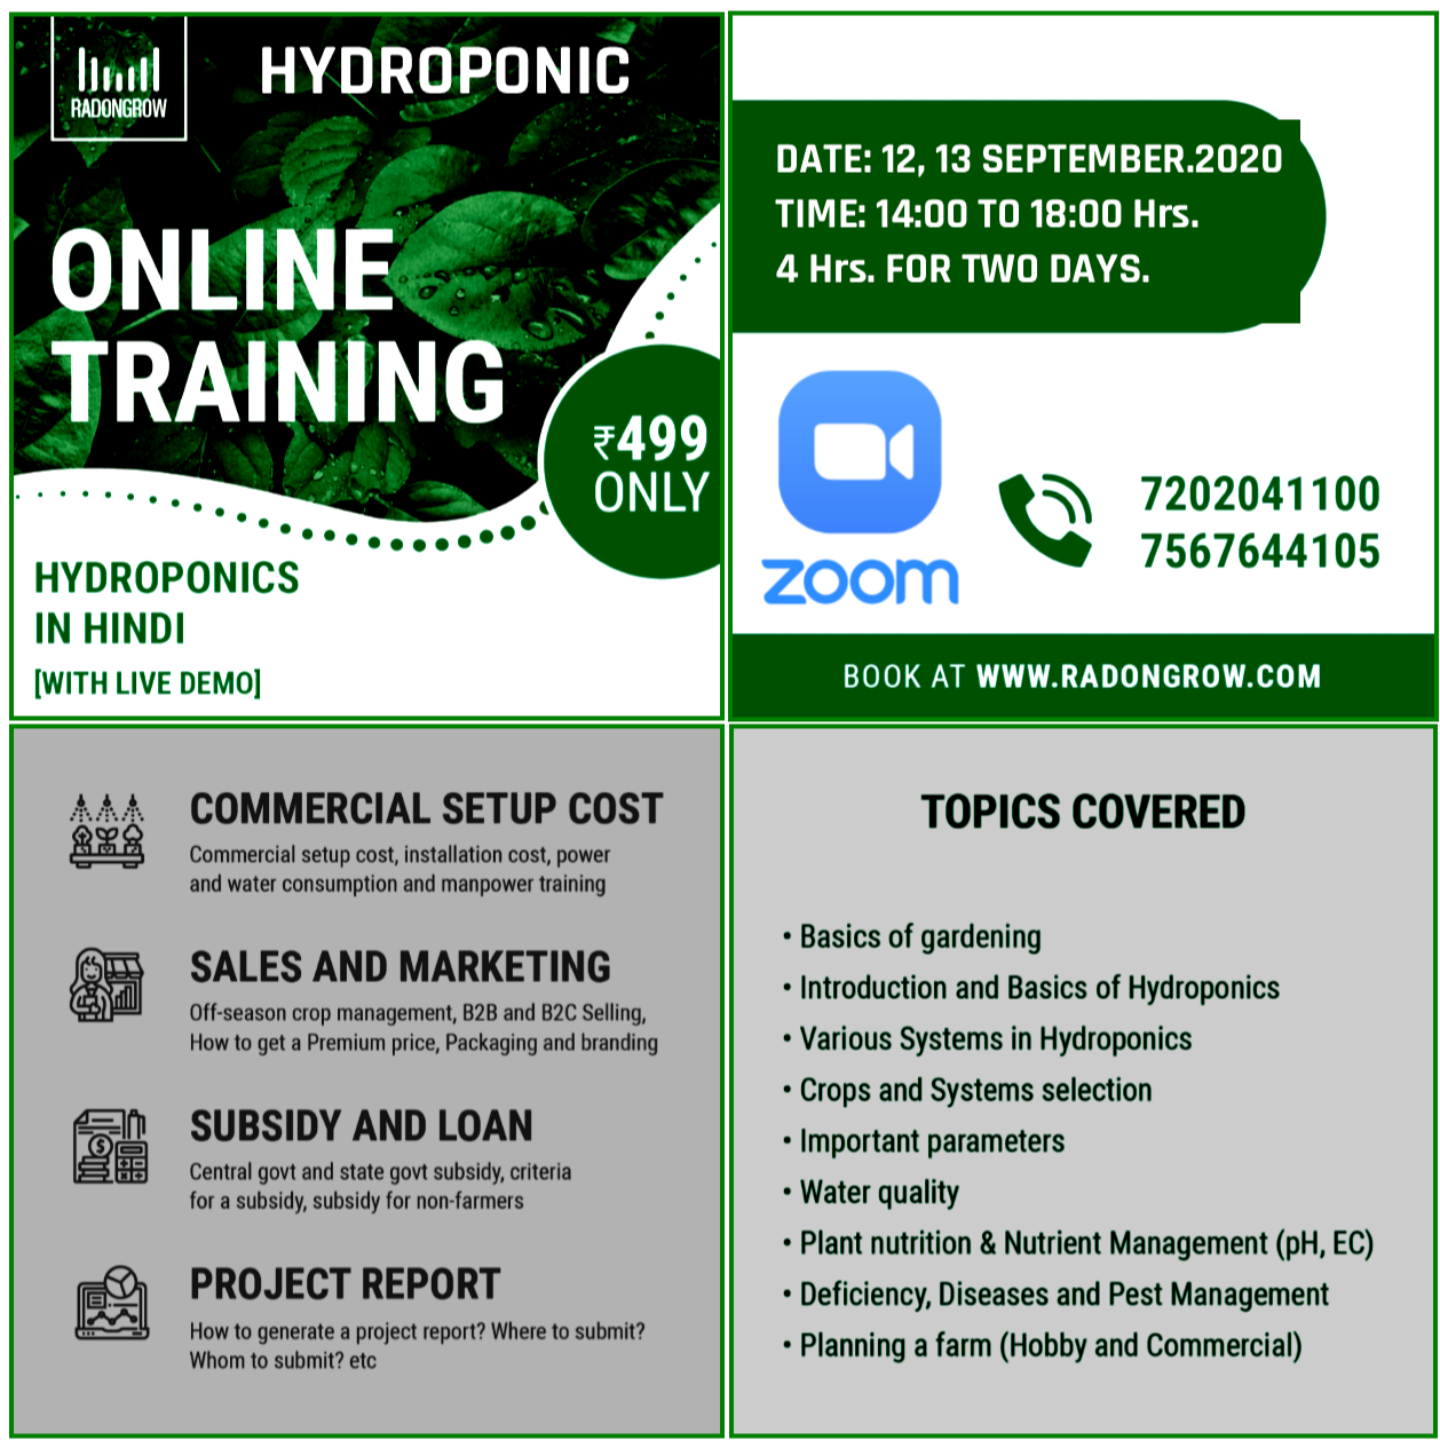 Hydroponic Training  IN HINDI 12,13 SEPTEMBER 2020